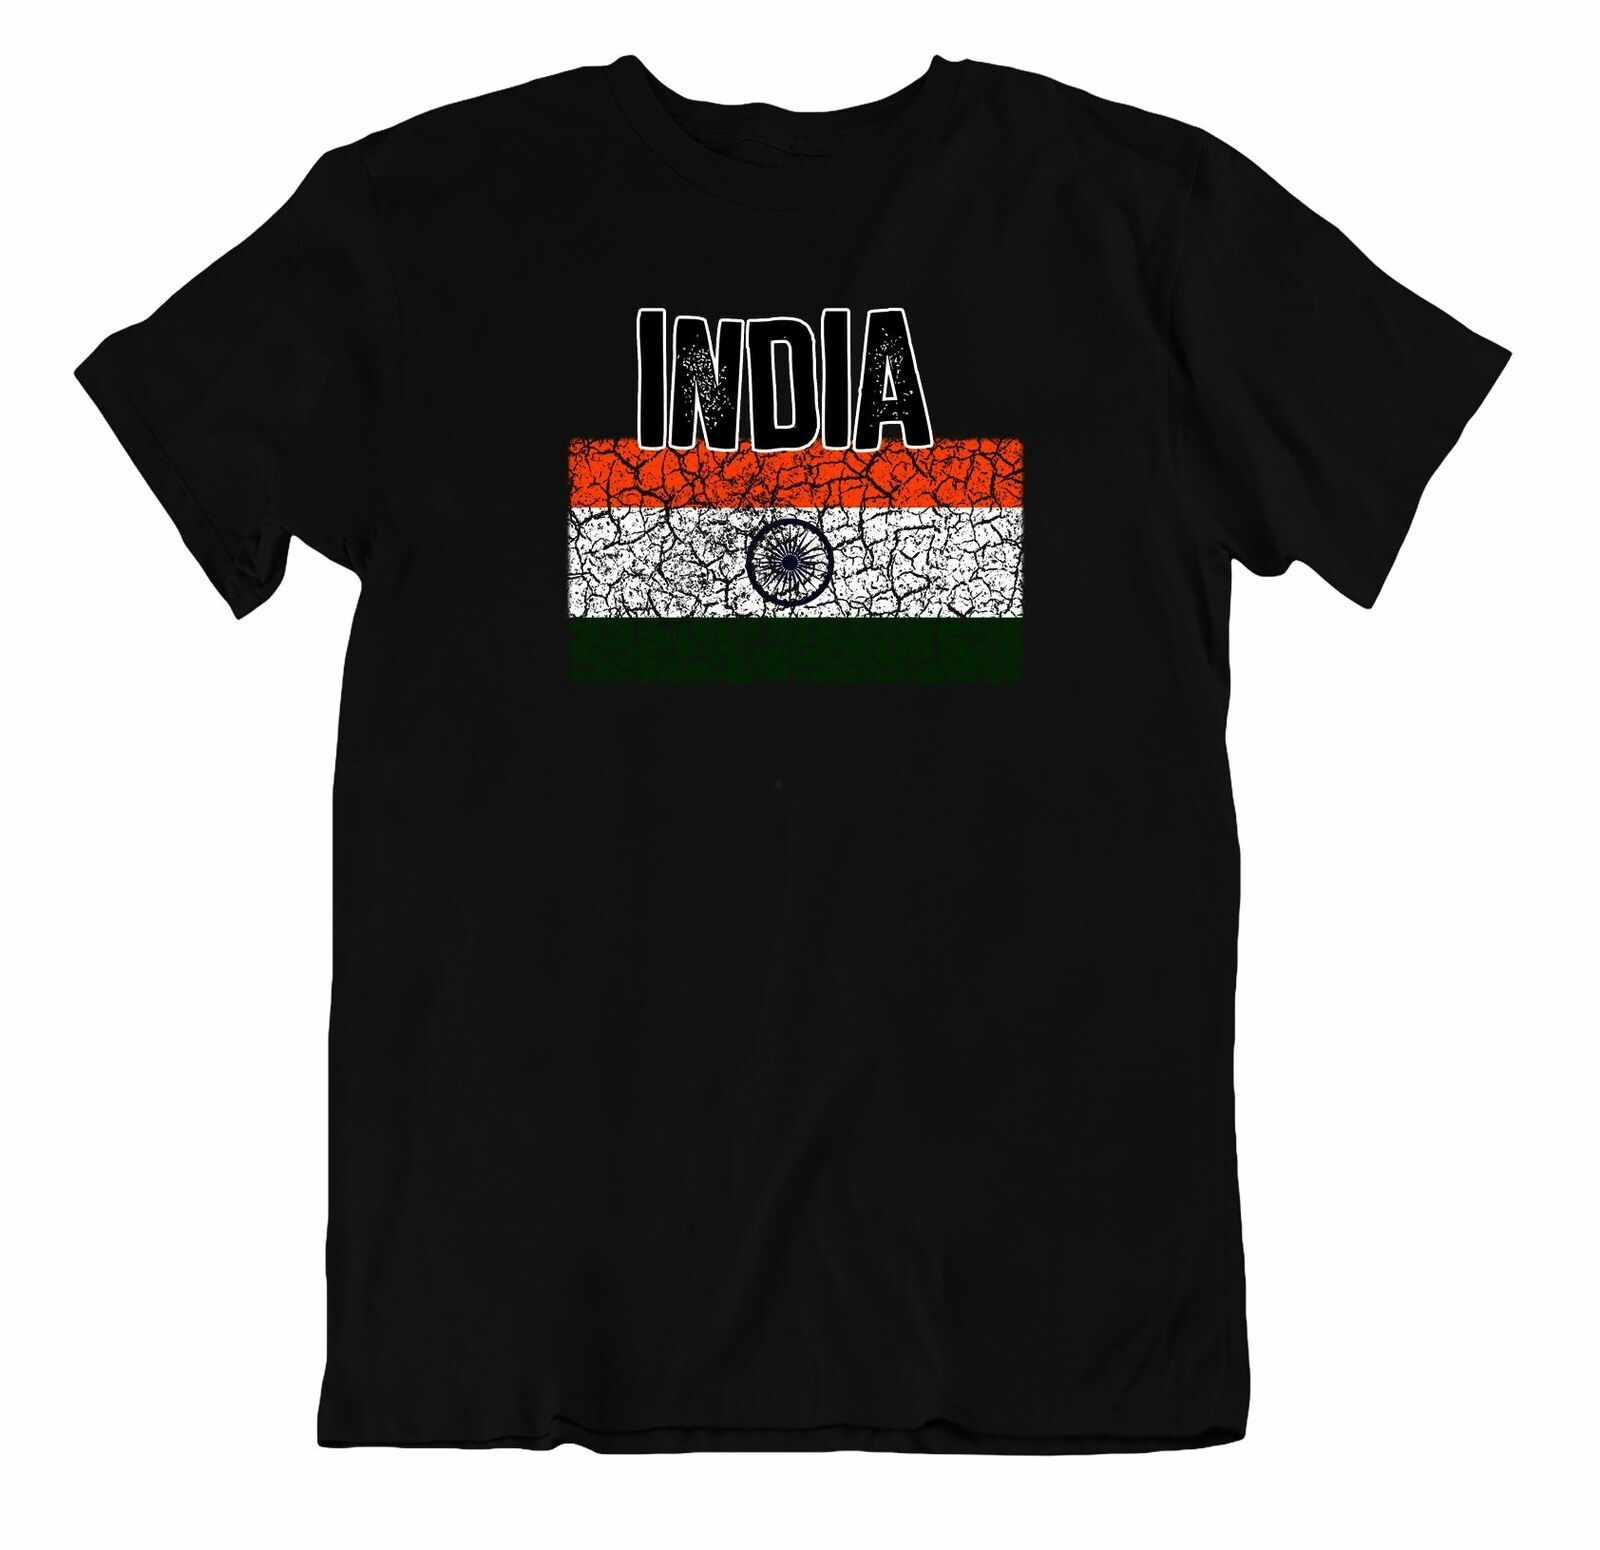 Primary image for Flag T-Shirt India Fashion Country Souvenir Gift Tee Pride logo